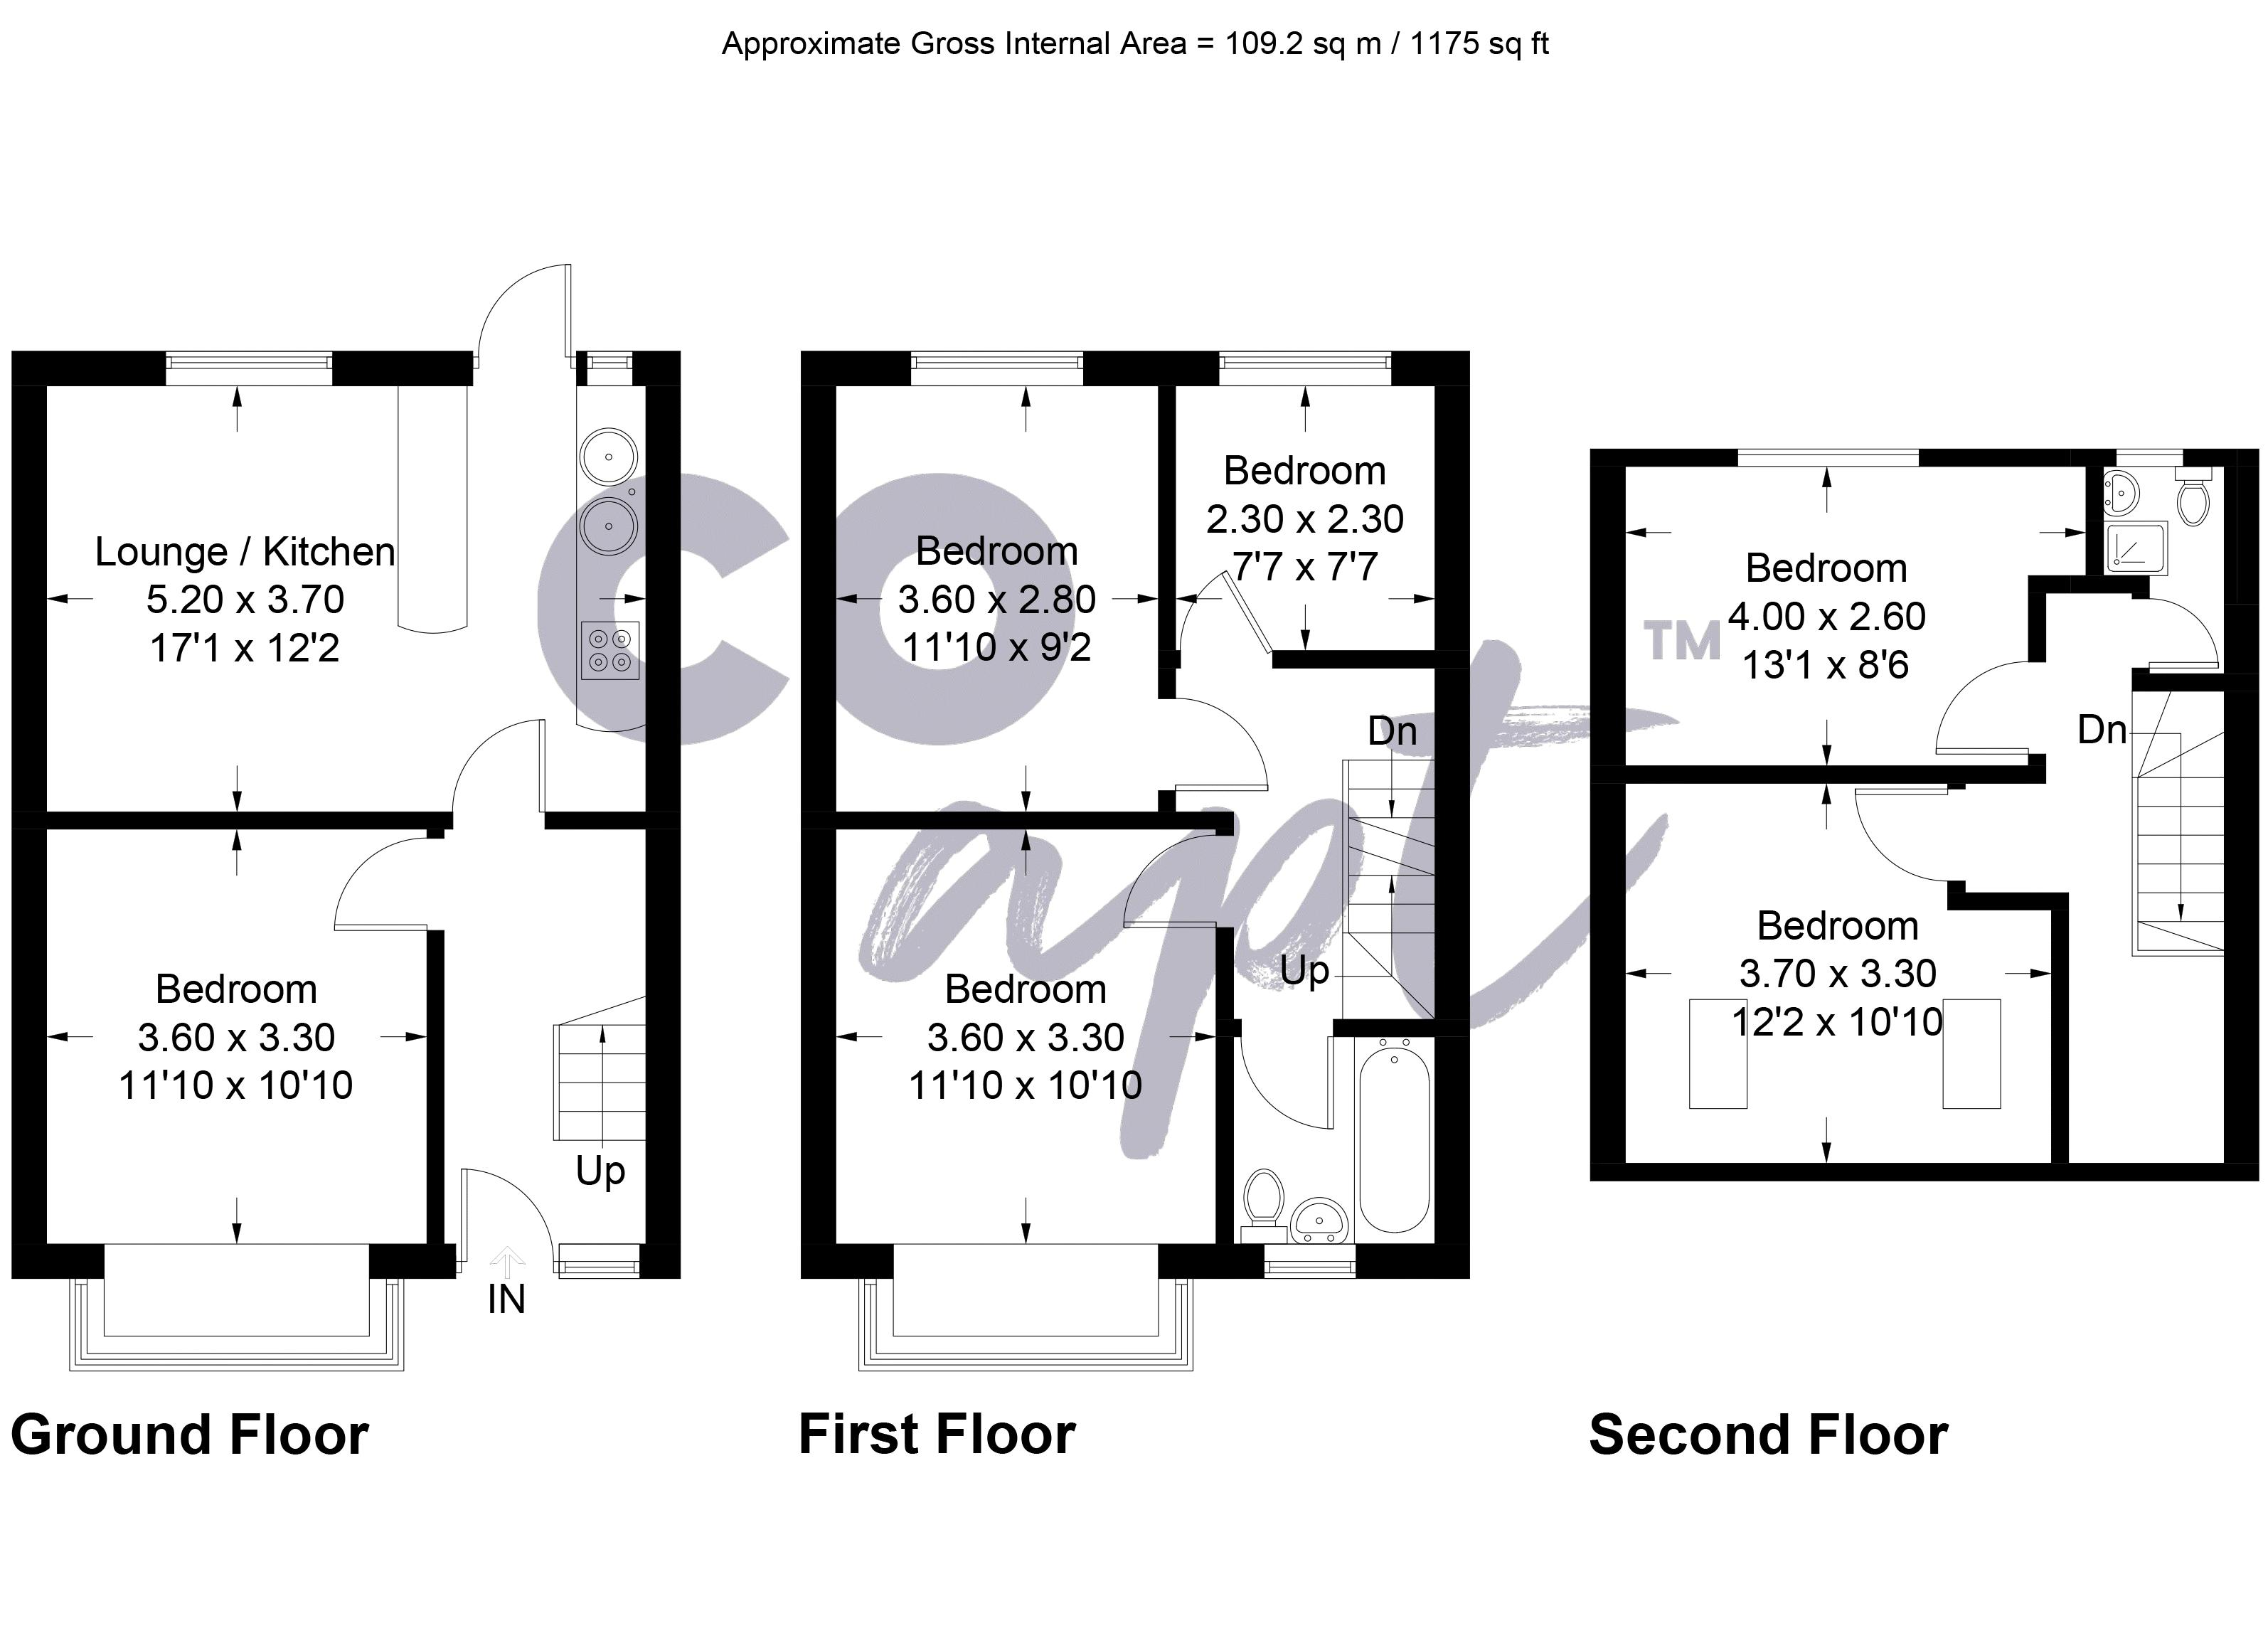 Floor plans for Milner Road, Brighton property for sale in Coombe Road, Brighton by Coapt